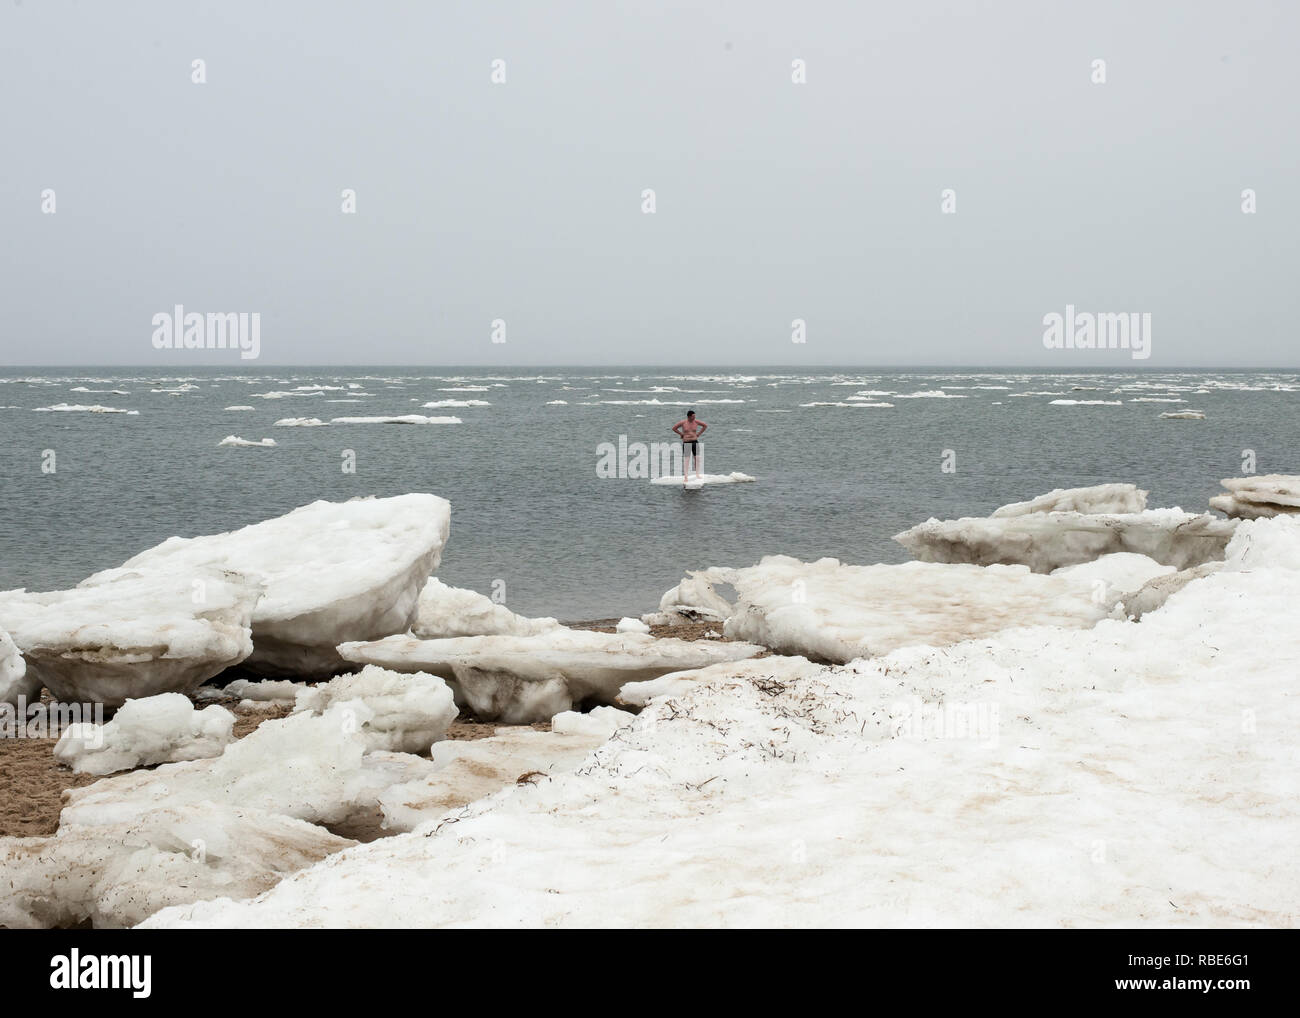 Boy standing on an iceberg out in the middle of Cape Cod Bay at Wellfleet, Massachusetts. - Stock Image